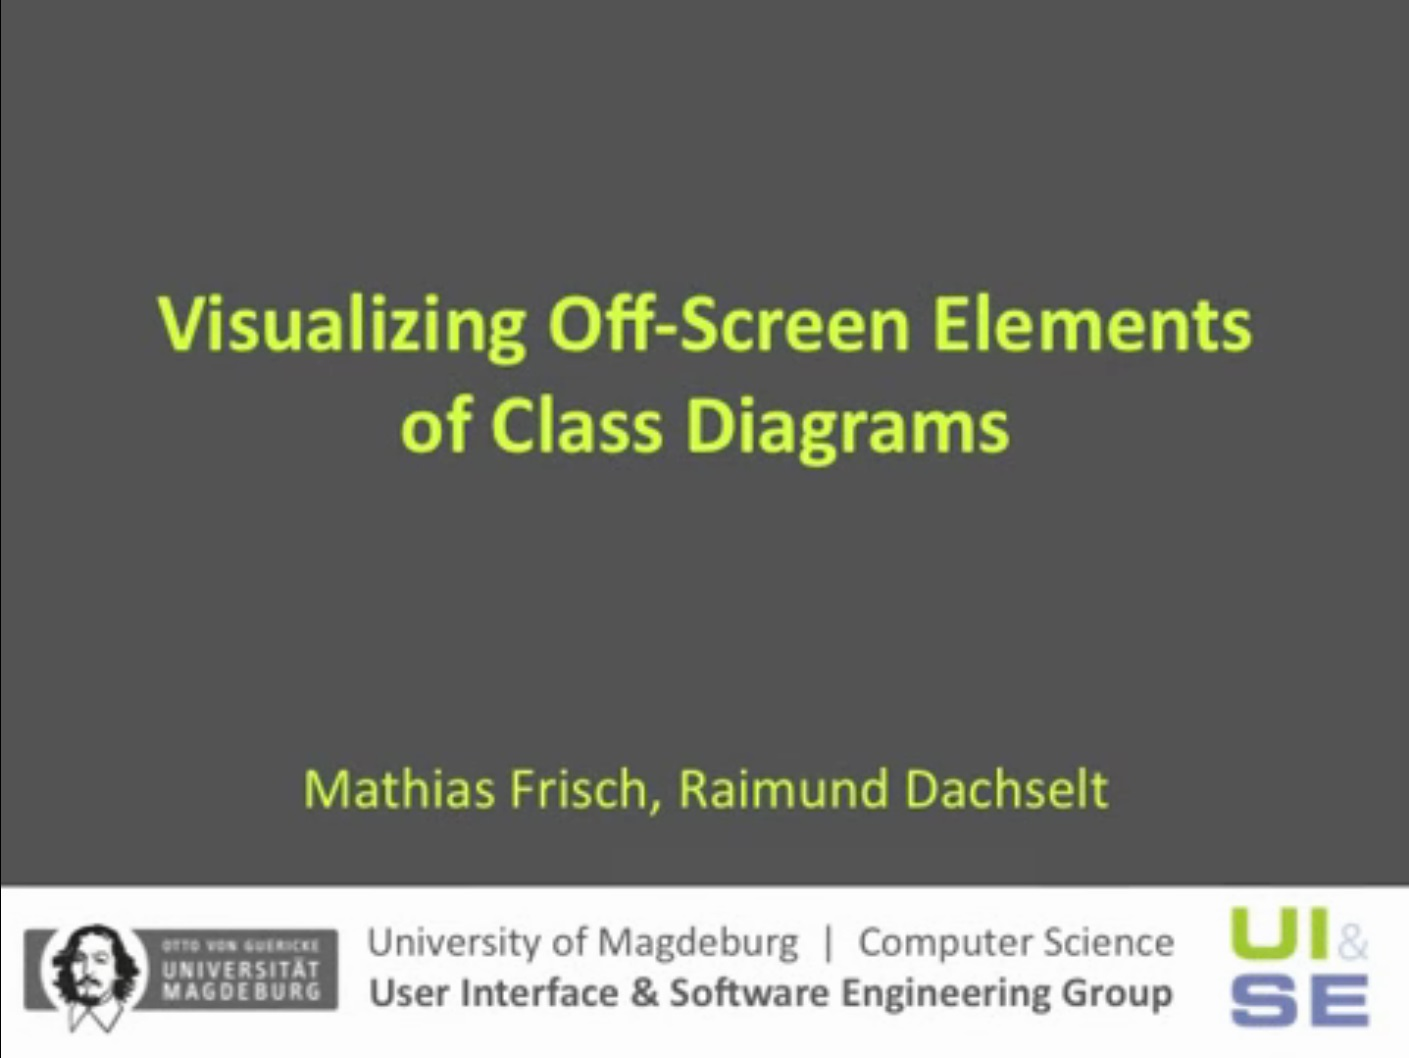 Full video of Visualizing Off-Screen Elements of Class Diagrams.